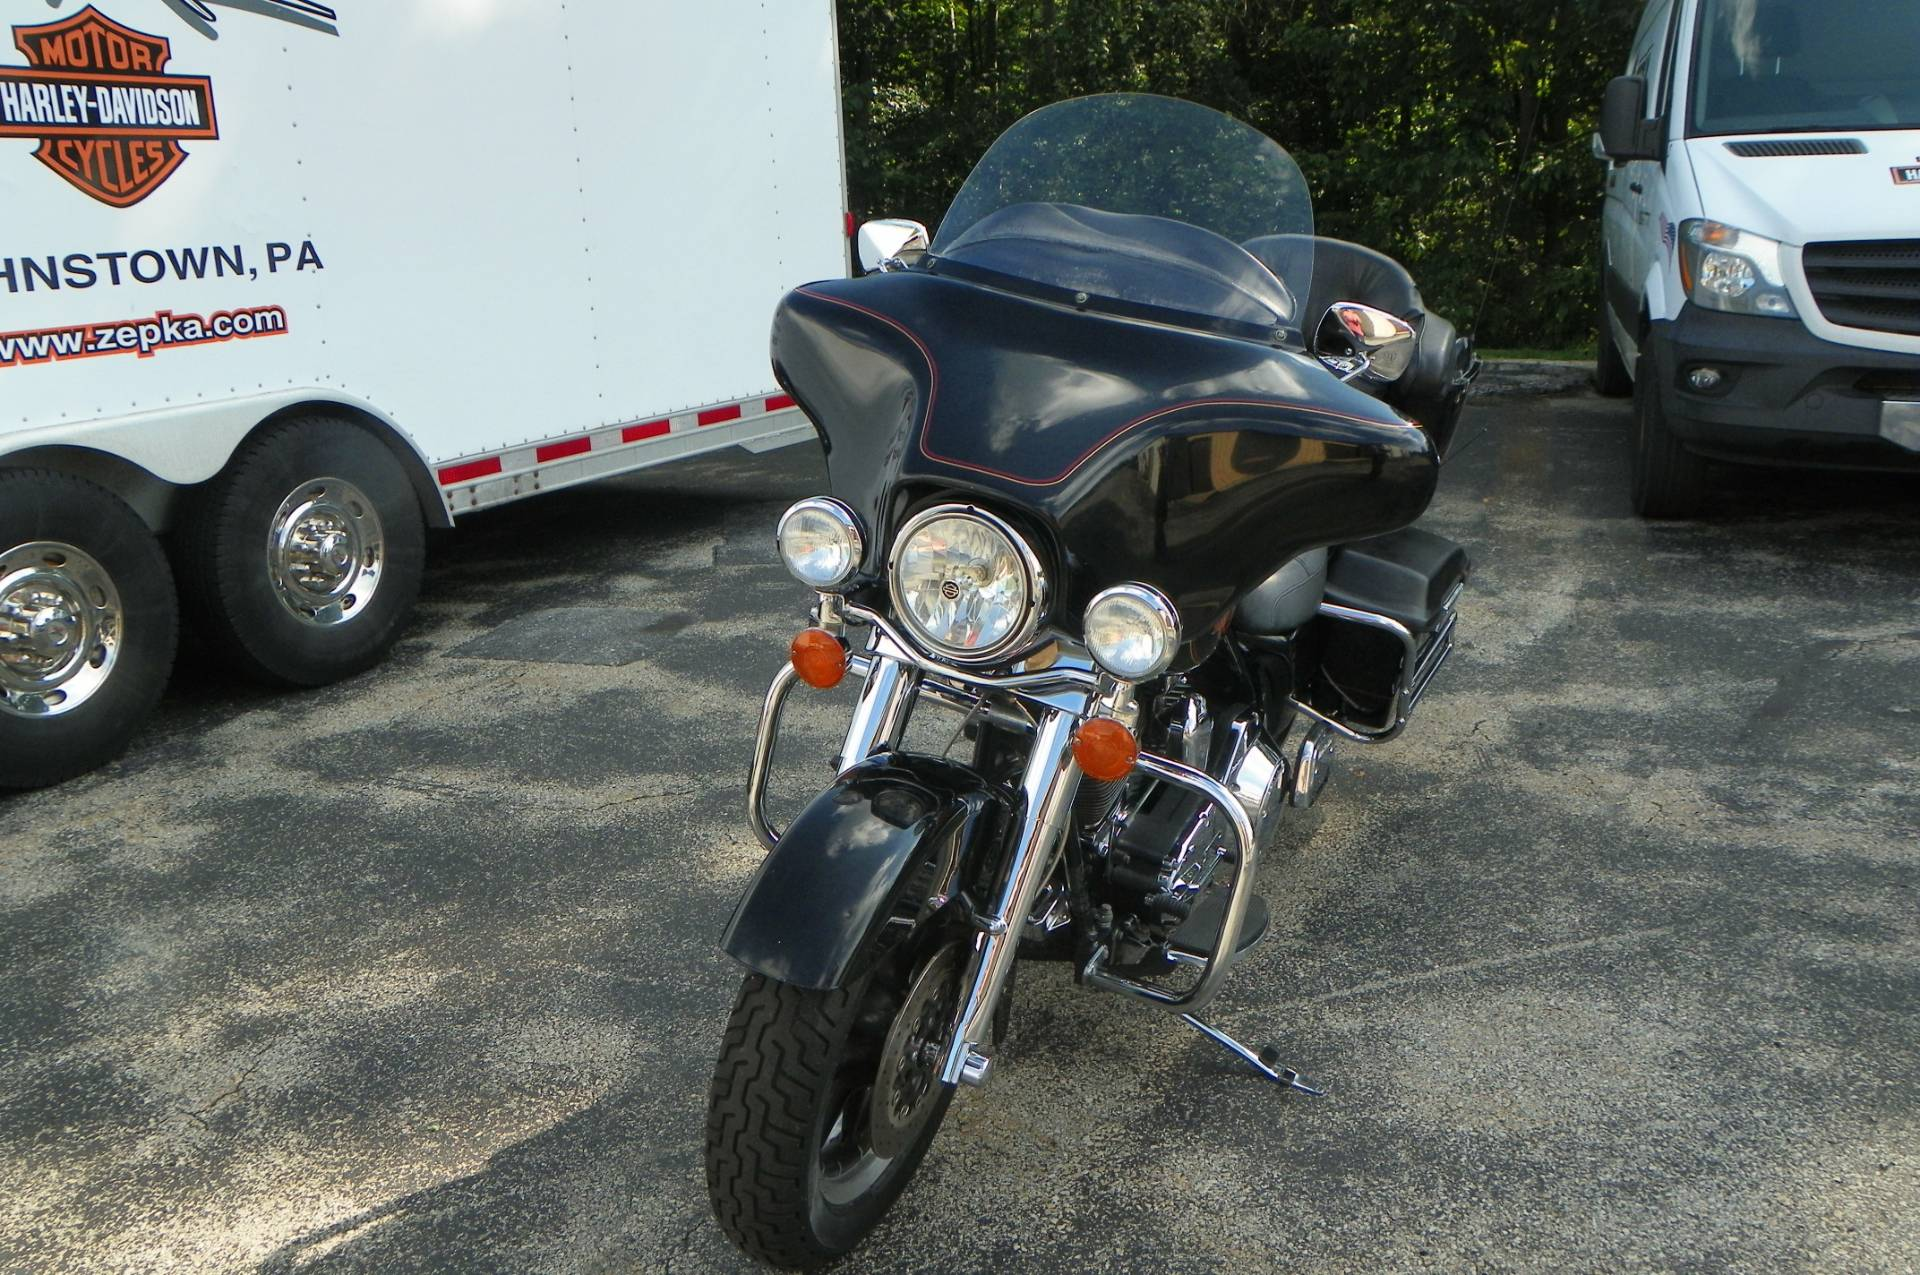 2002 Harley-Davidson FLHTC/FLHTCI Electra Glide® Classic in Johnstown, Pennsylvania - Photo 9